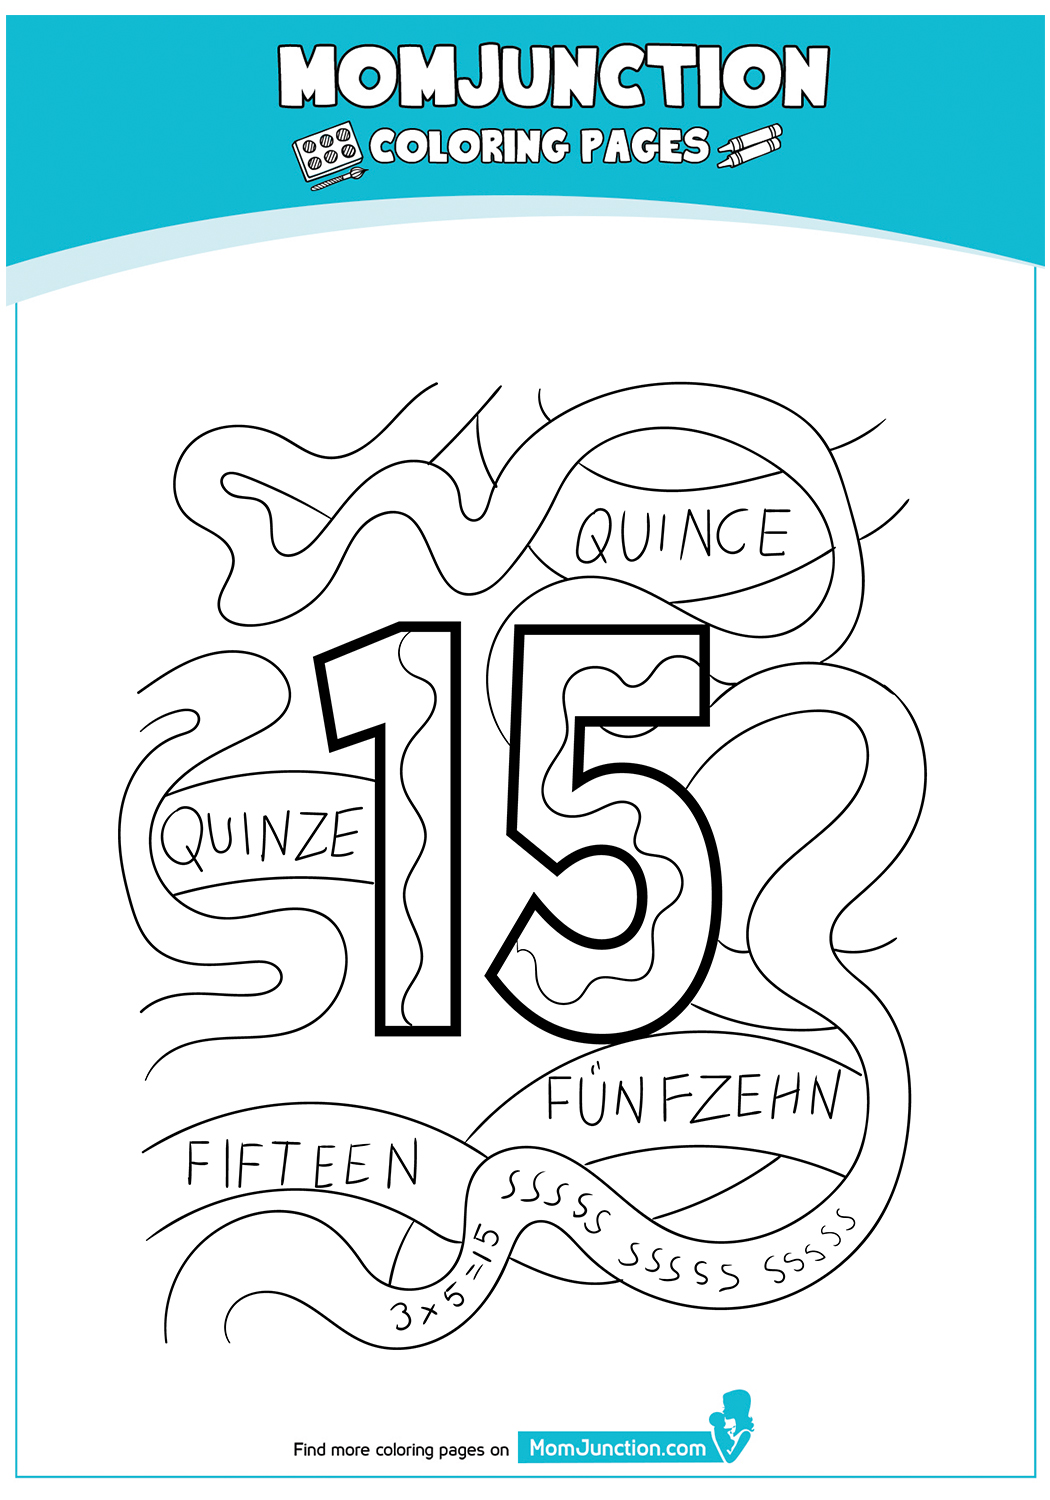 Number-15-in-Several-Languages-17